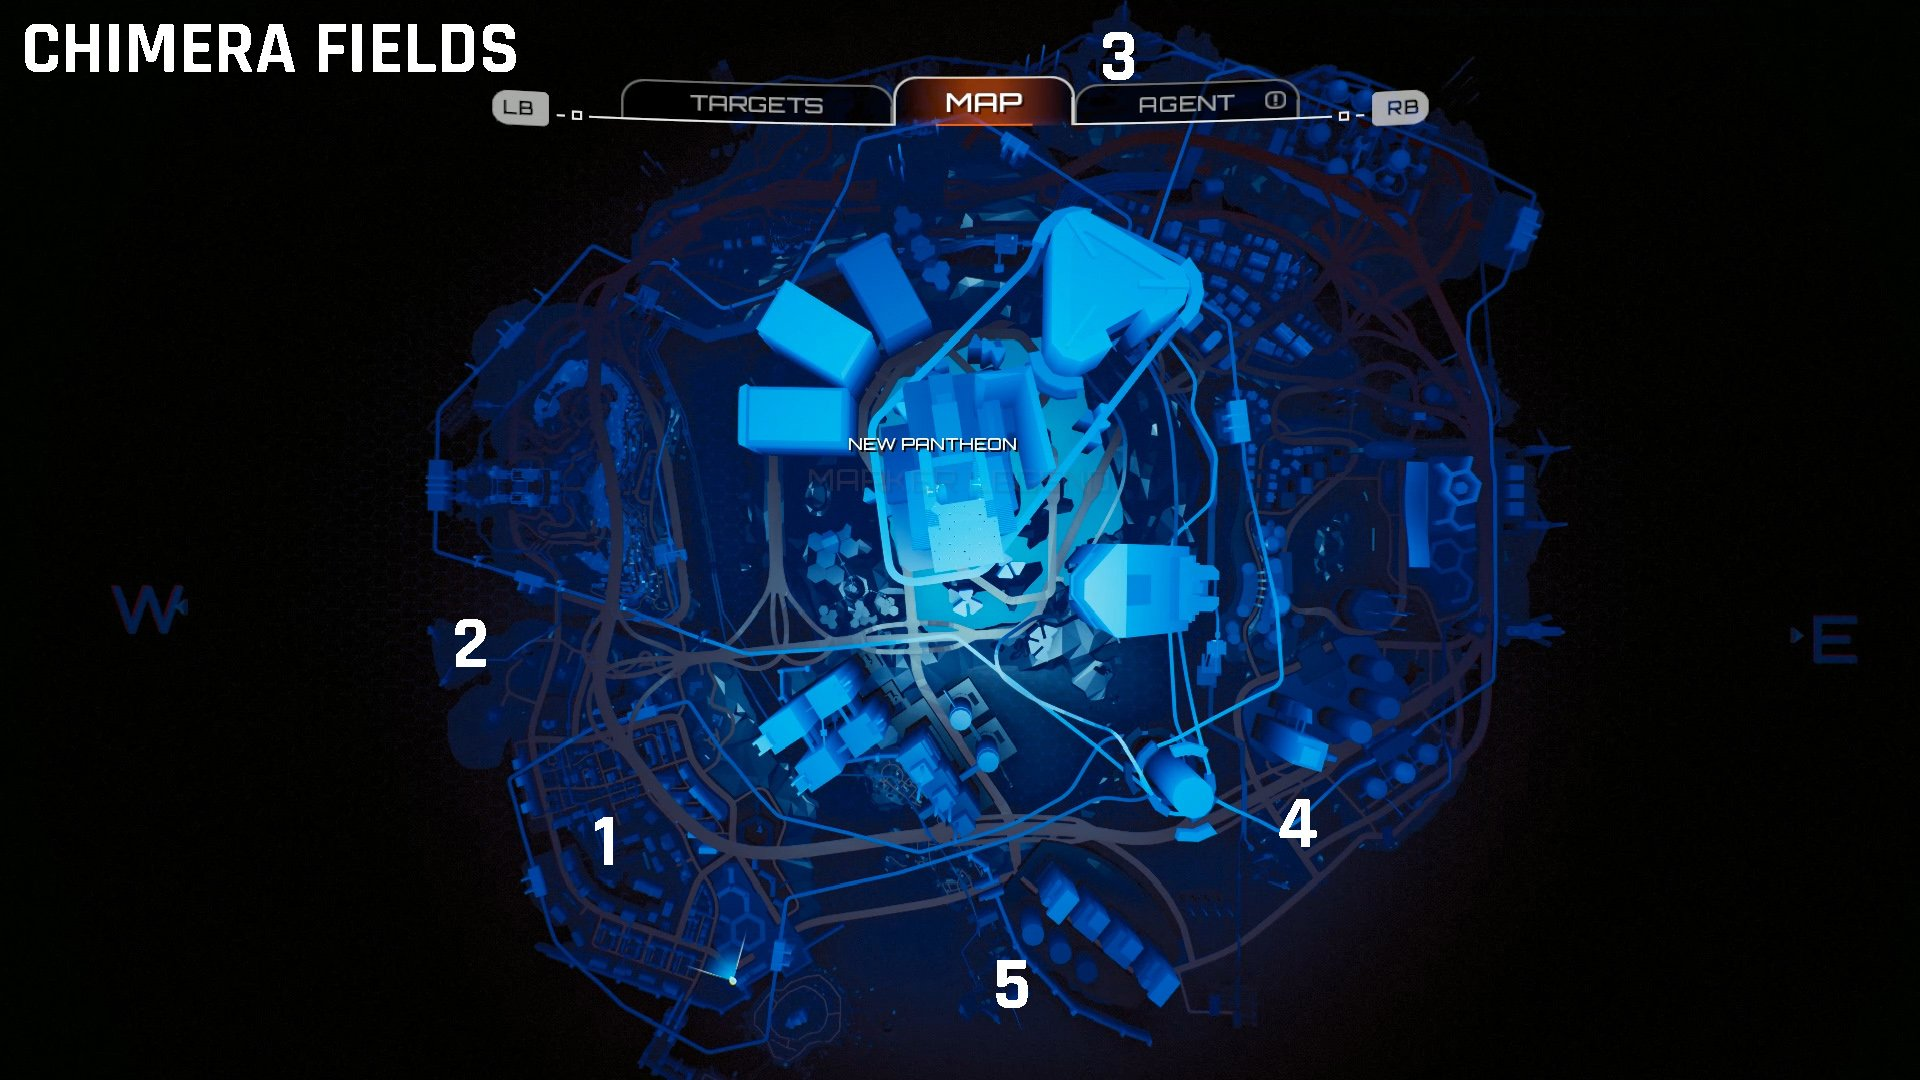 Crackdown 3 Chimera field locations map